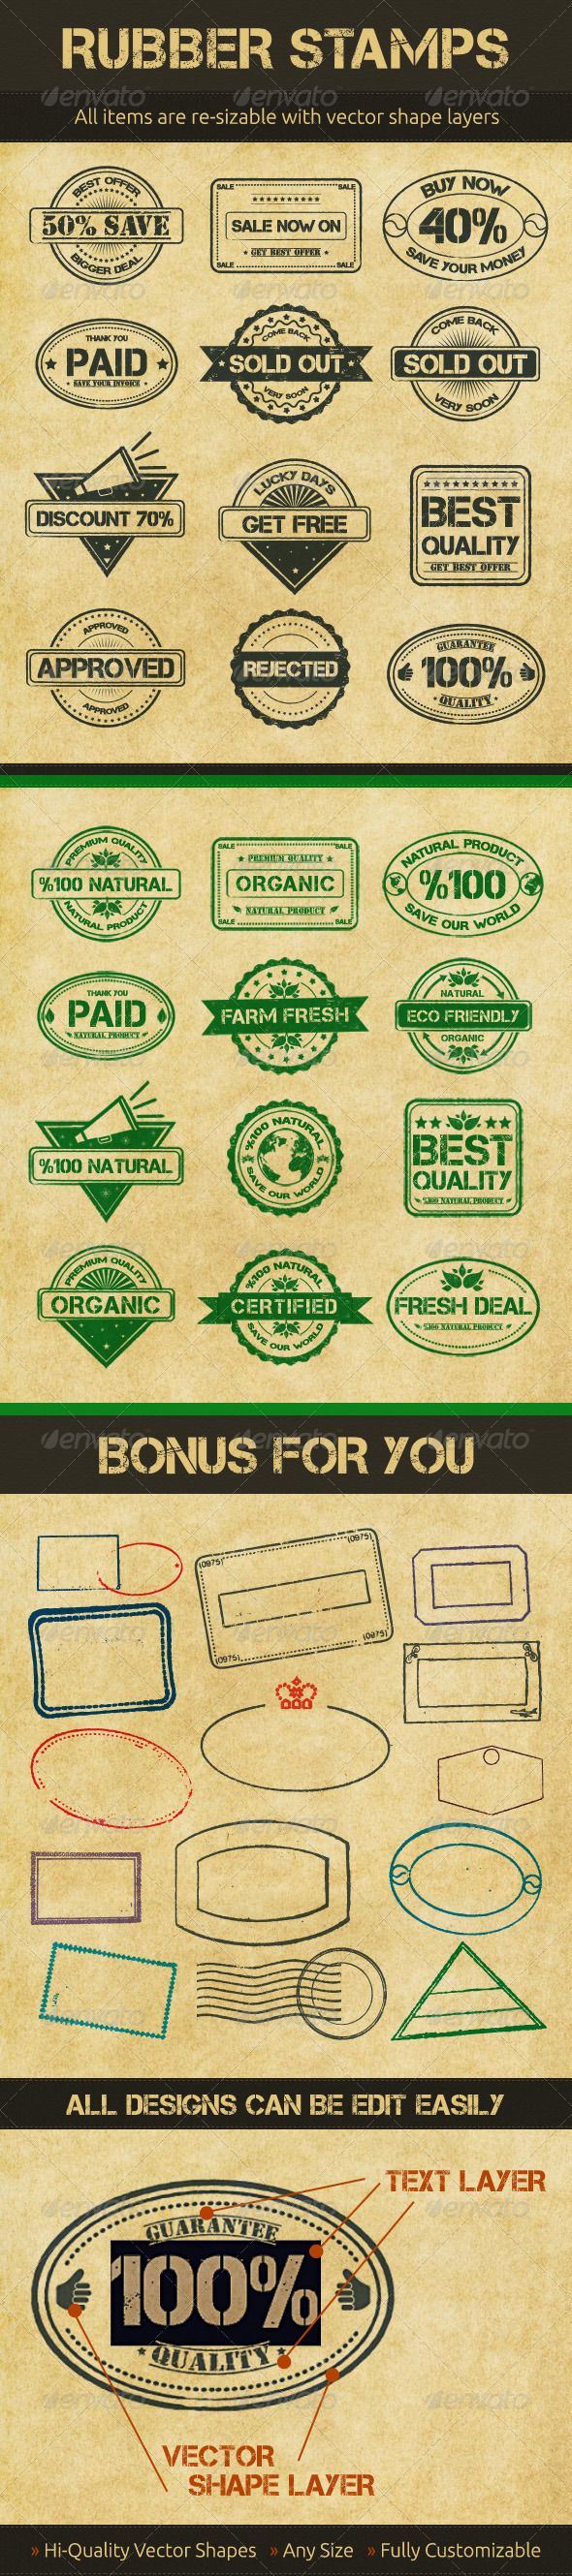 Selling Rubber Stamps  #GraphicRiver            	                	 High details vector rubber stamps. Like real stamps, rough and cracked.  	 Very organized name of layers, so you can easily change colors or go any size…  Included Files: 	 	 2 PSD (Bonus and Main Files with text layers) 		 2 AI CS (Bonus and Main Files with text layers) 	  	 If you like them, please rate it      Created: 5July12 GraphicsFilesIncluded: PhotoshopPSD #AIIllustrator HighResolution: No Layered: Yes…